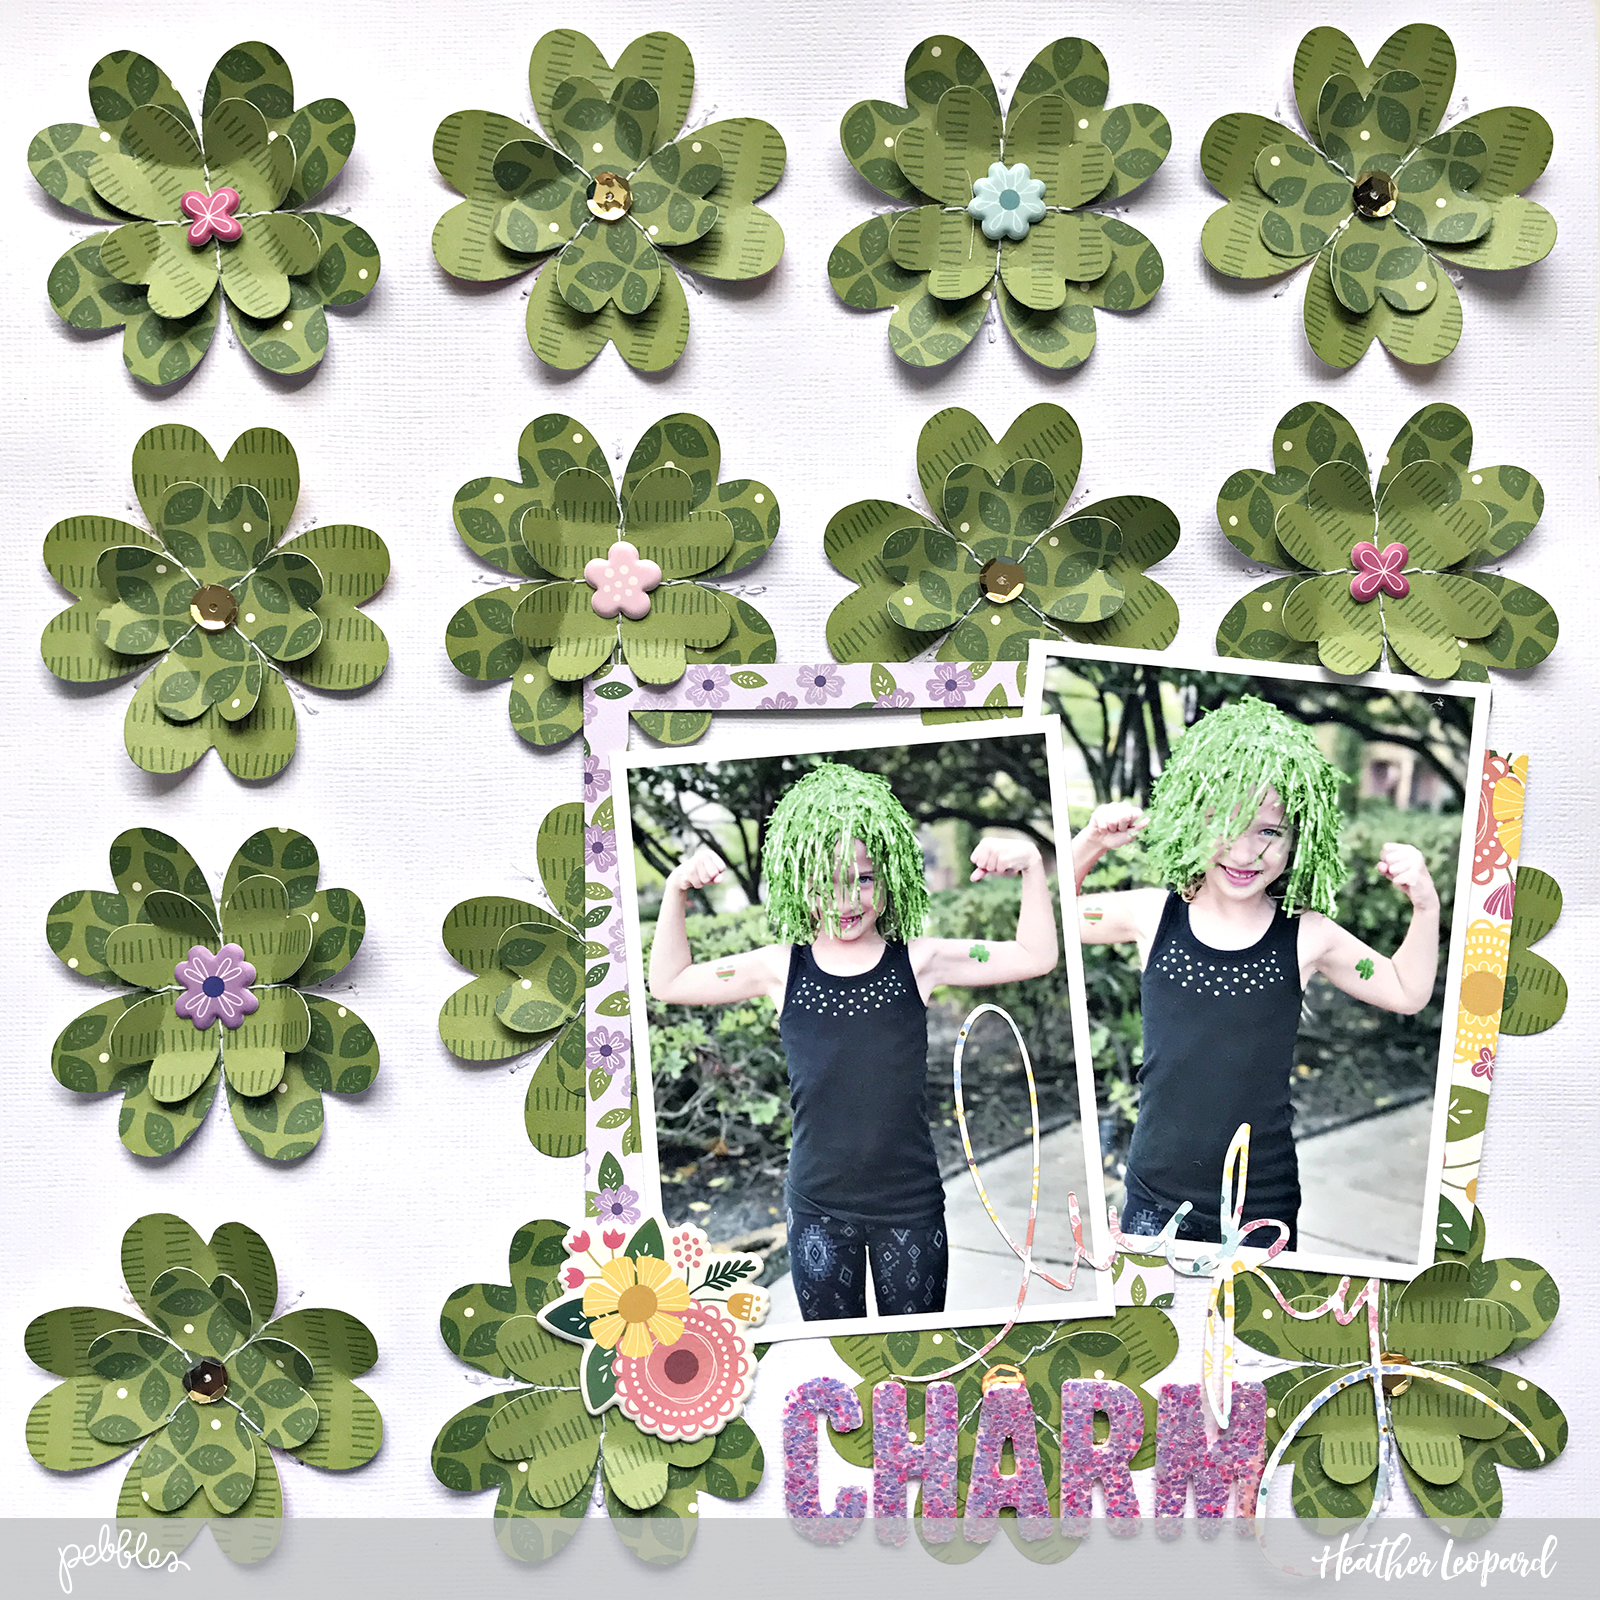 Lucky Charm Layout by @HeatherLeopard using @pebblesinc #Tealightful collection